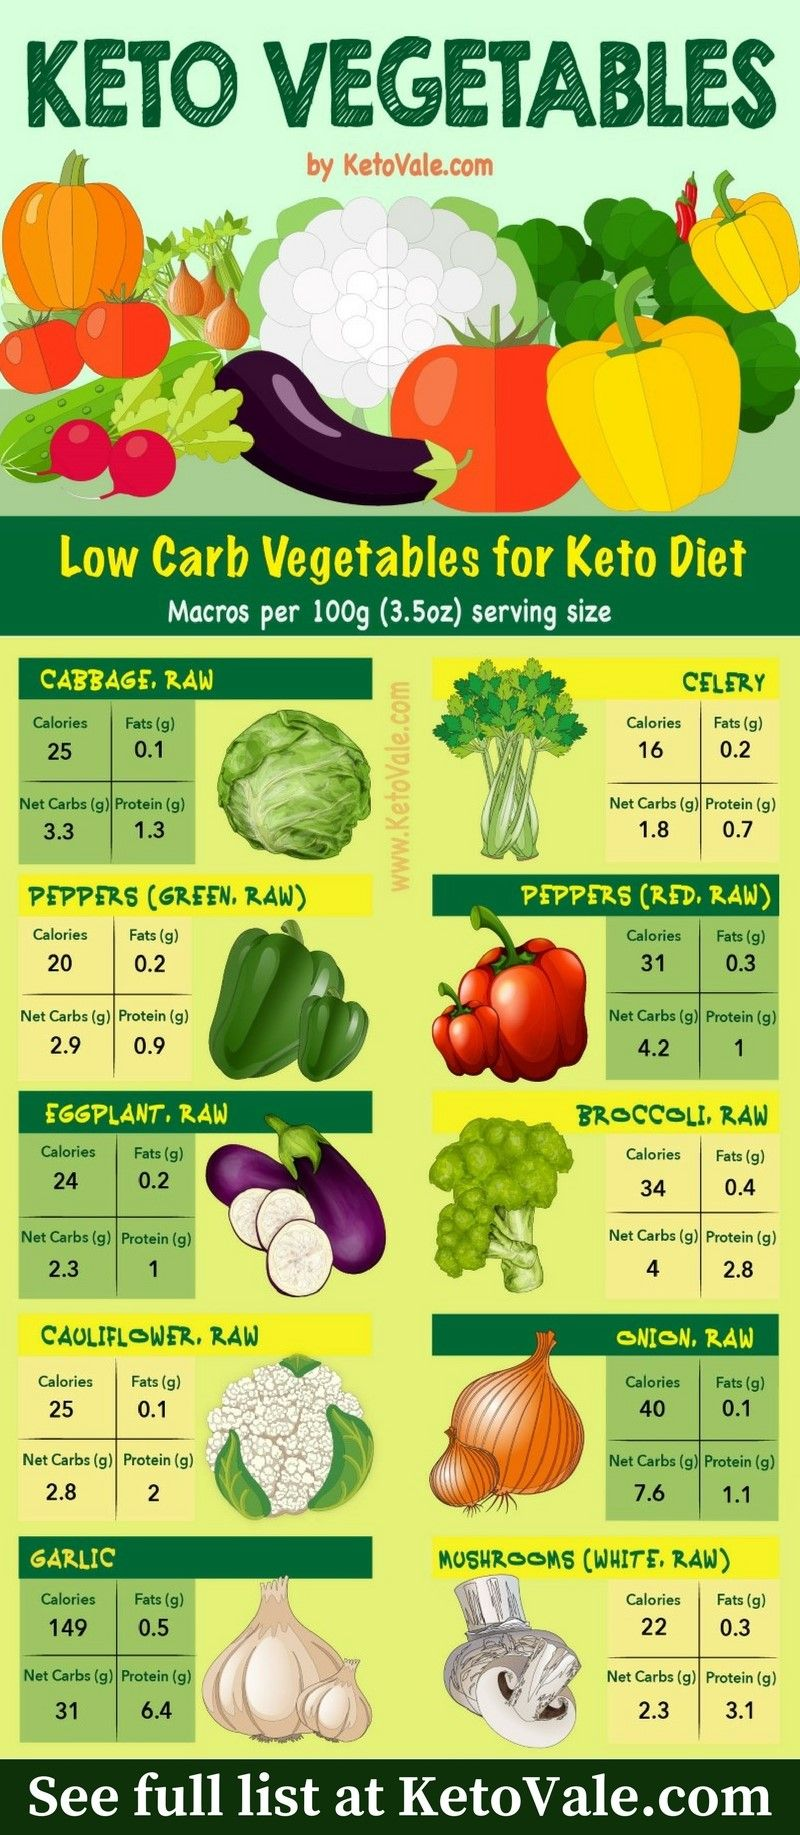 7 Remedies for Keto Diet Constipation